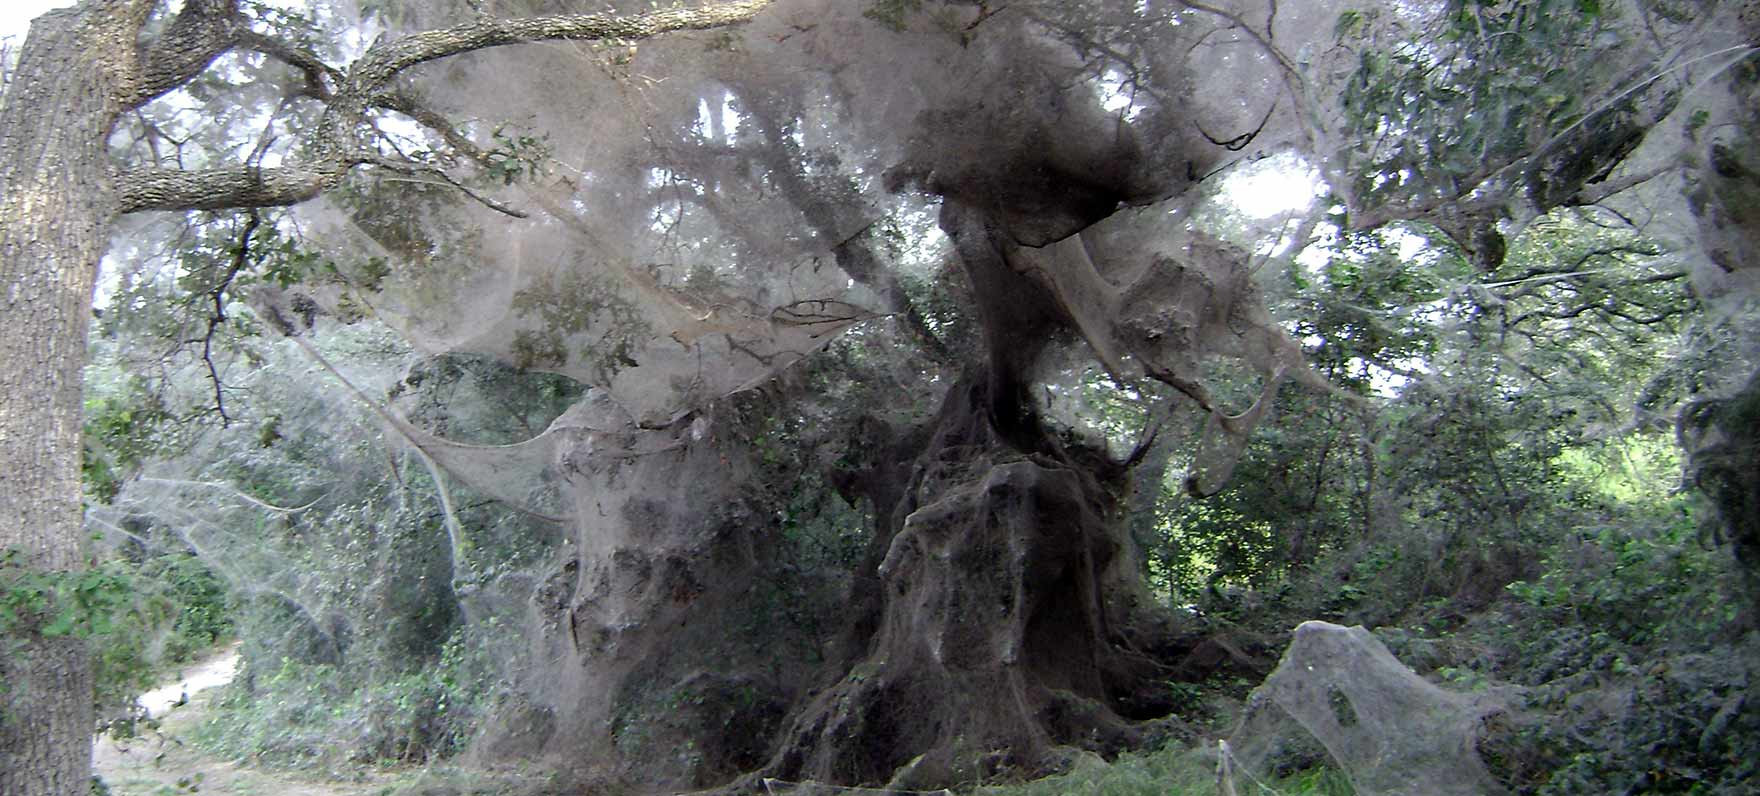 Lake Tawakoni State Park is known for the largest spiderweb ever documented.